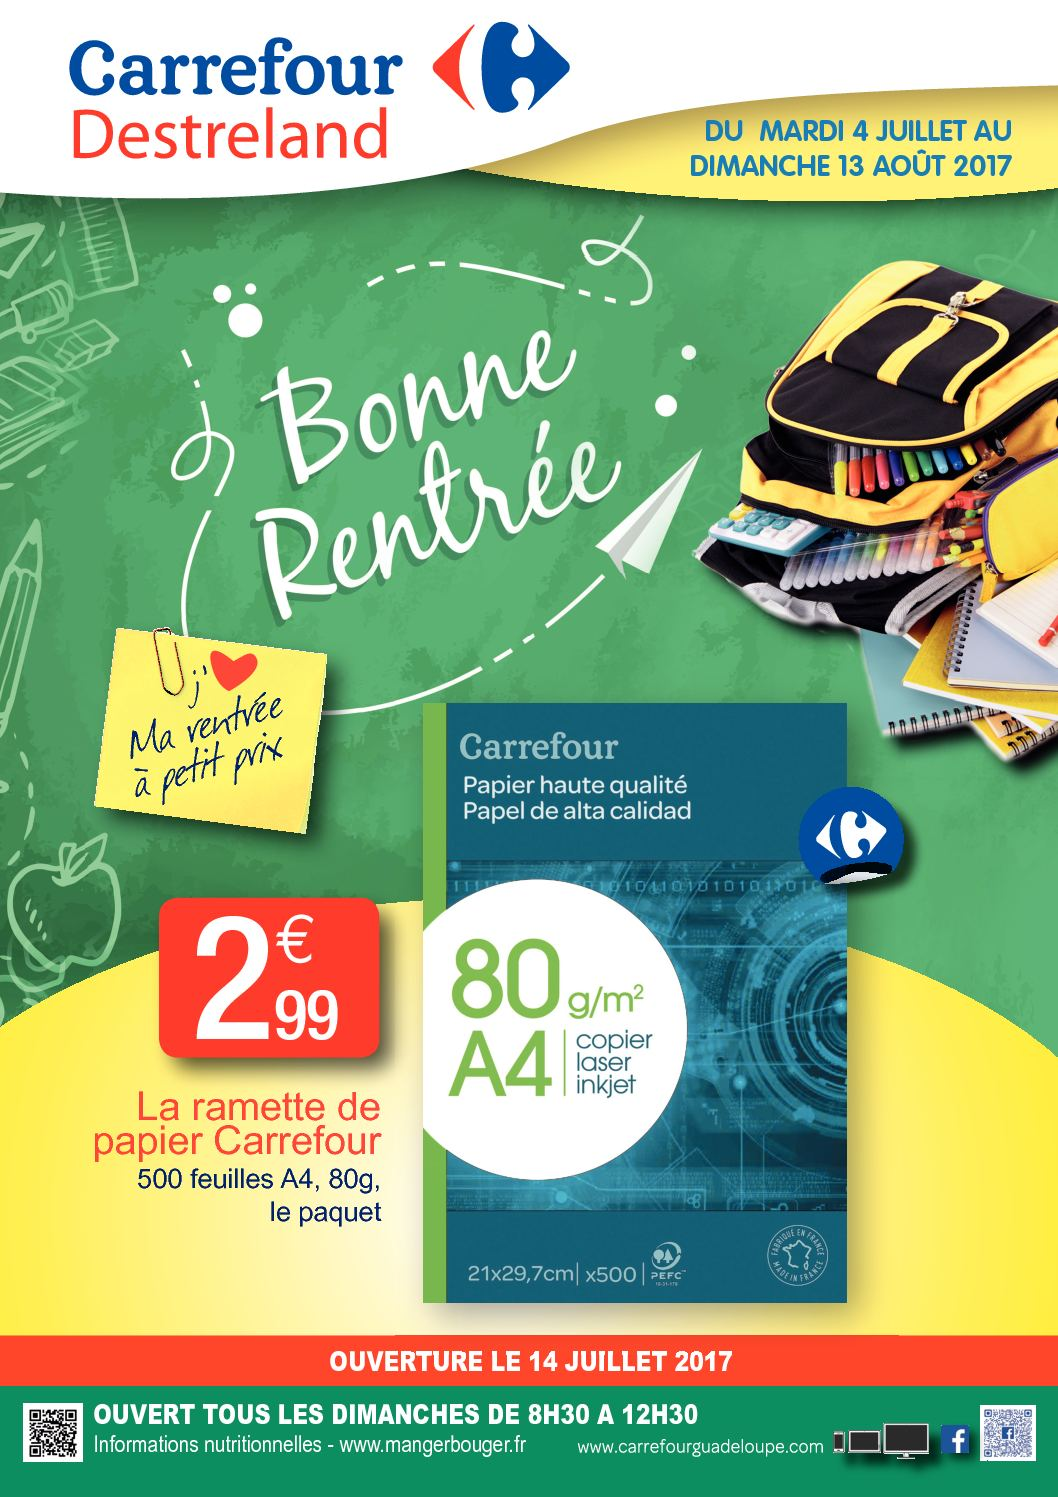 Extrêmement Calaméo - Carrefour Destreland Rentree Des Classes OG57